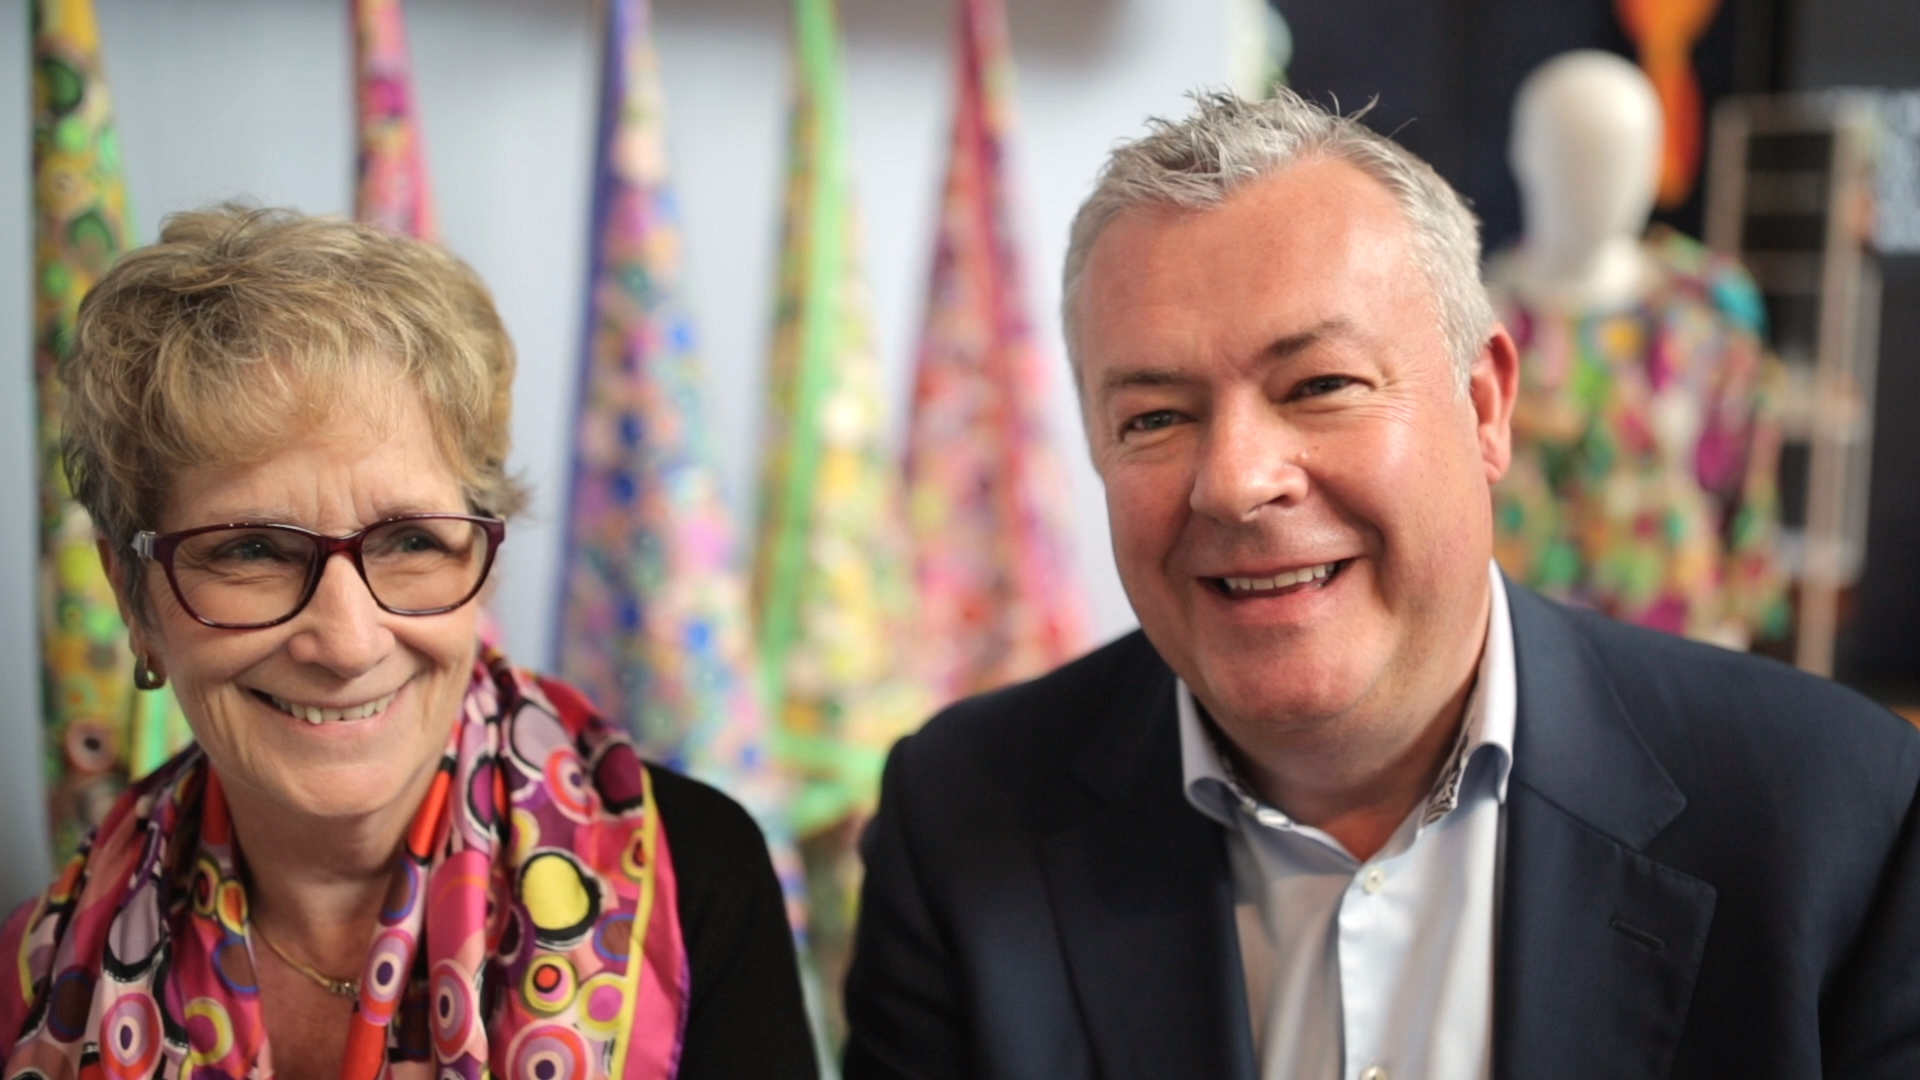 Video preview: Is Textile Printing a Business Opportunity for Printers? CMYUK Thinks So!